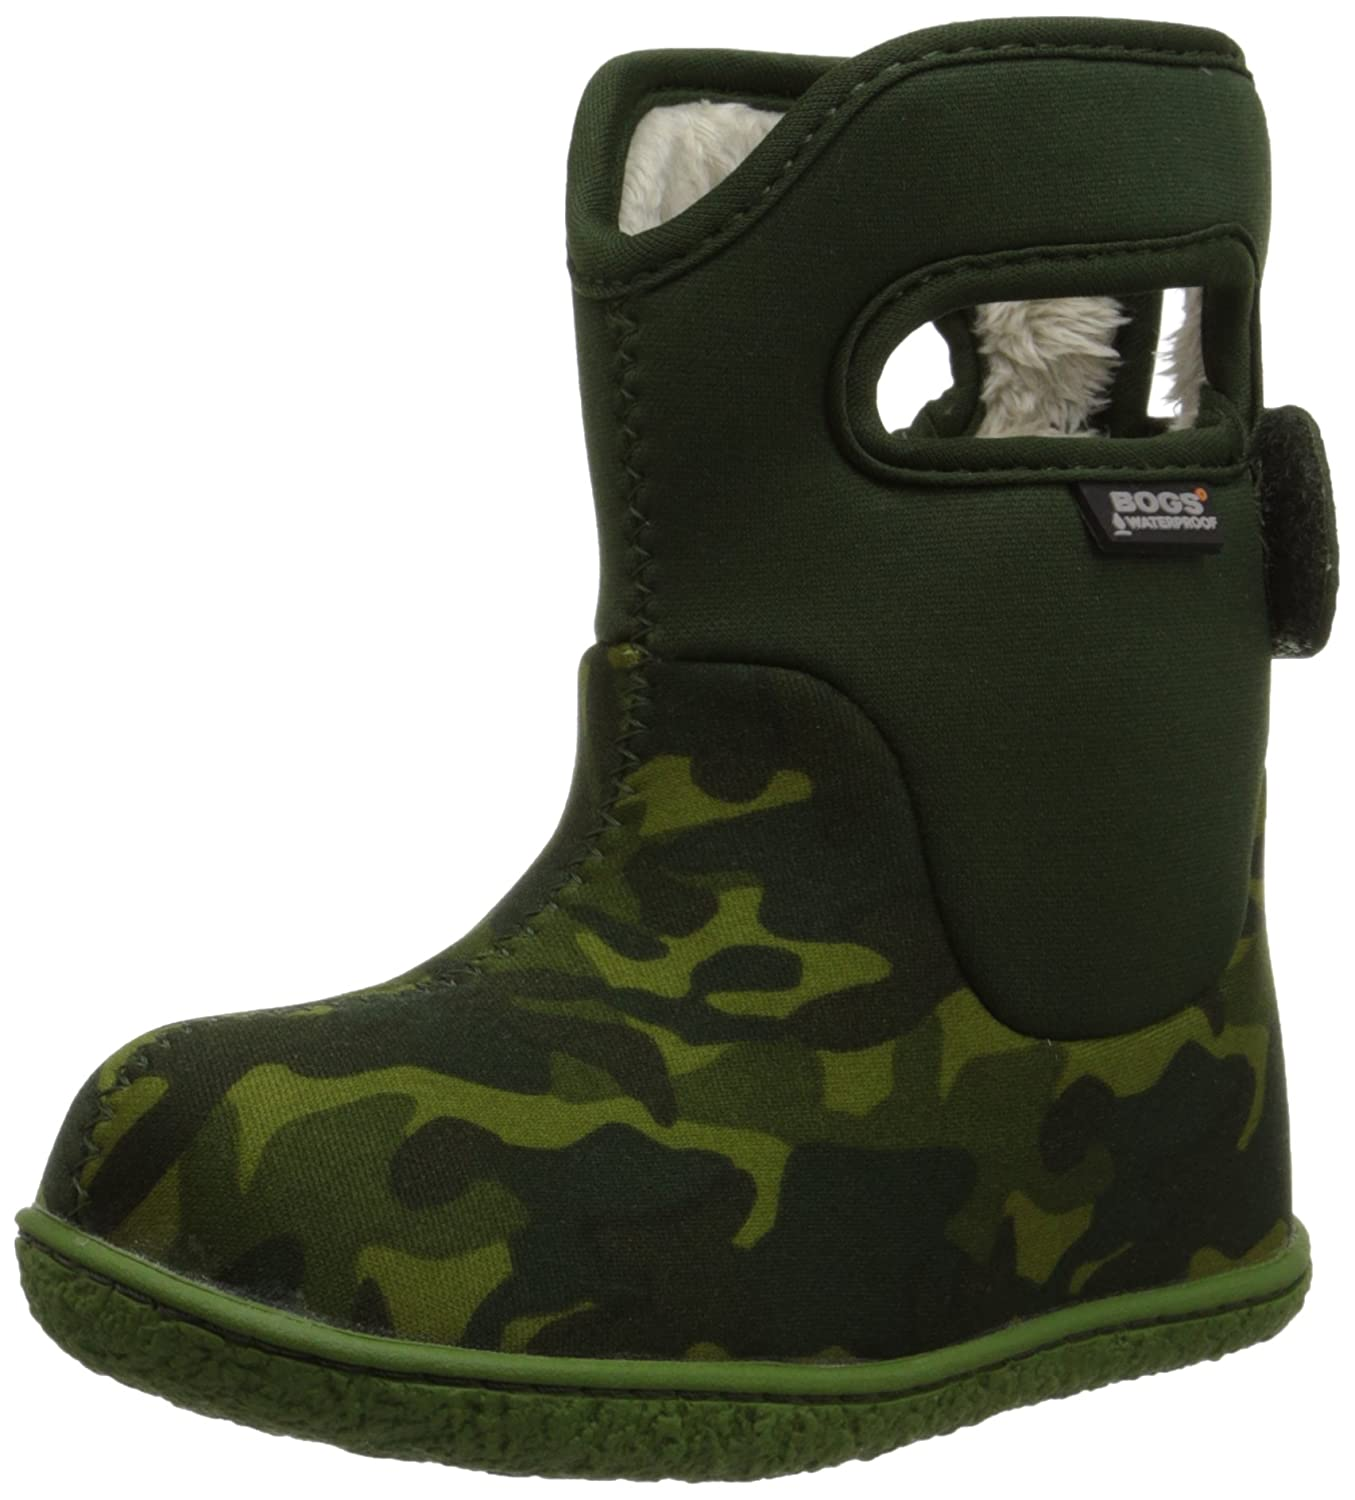 Amazon.com | Bogs Baby Classic Camo Waterproof Insulated Rain Boot  (Infant/Toddler/Little Kid/Big Kid), Green/Multi, 4 M US Toddler | Snow  Boots